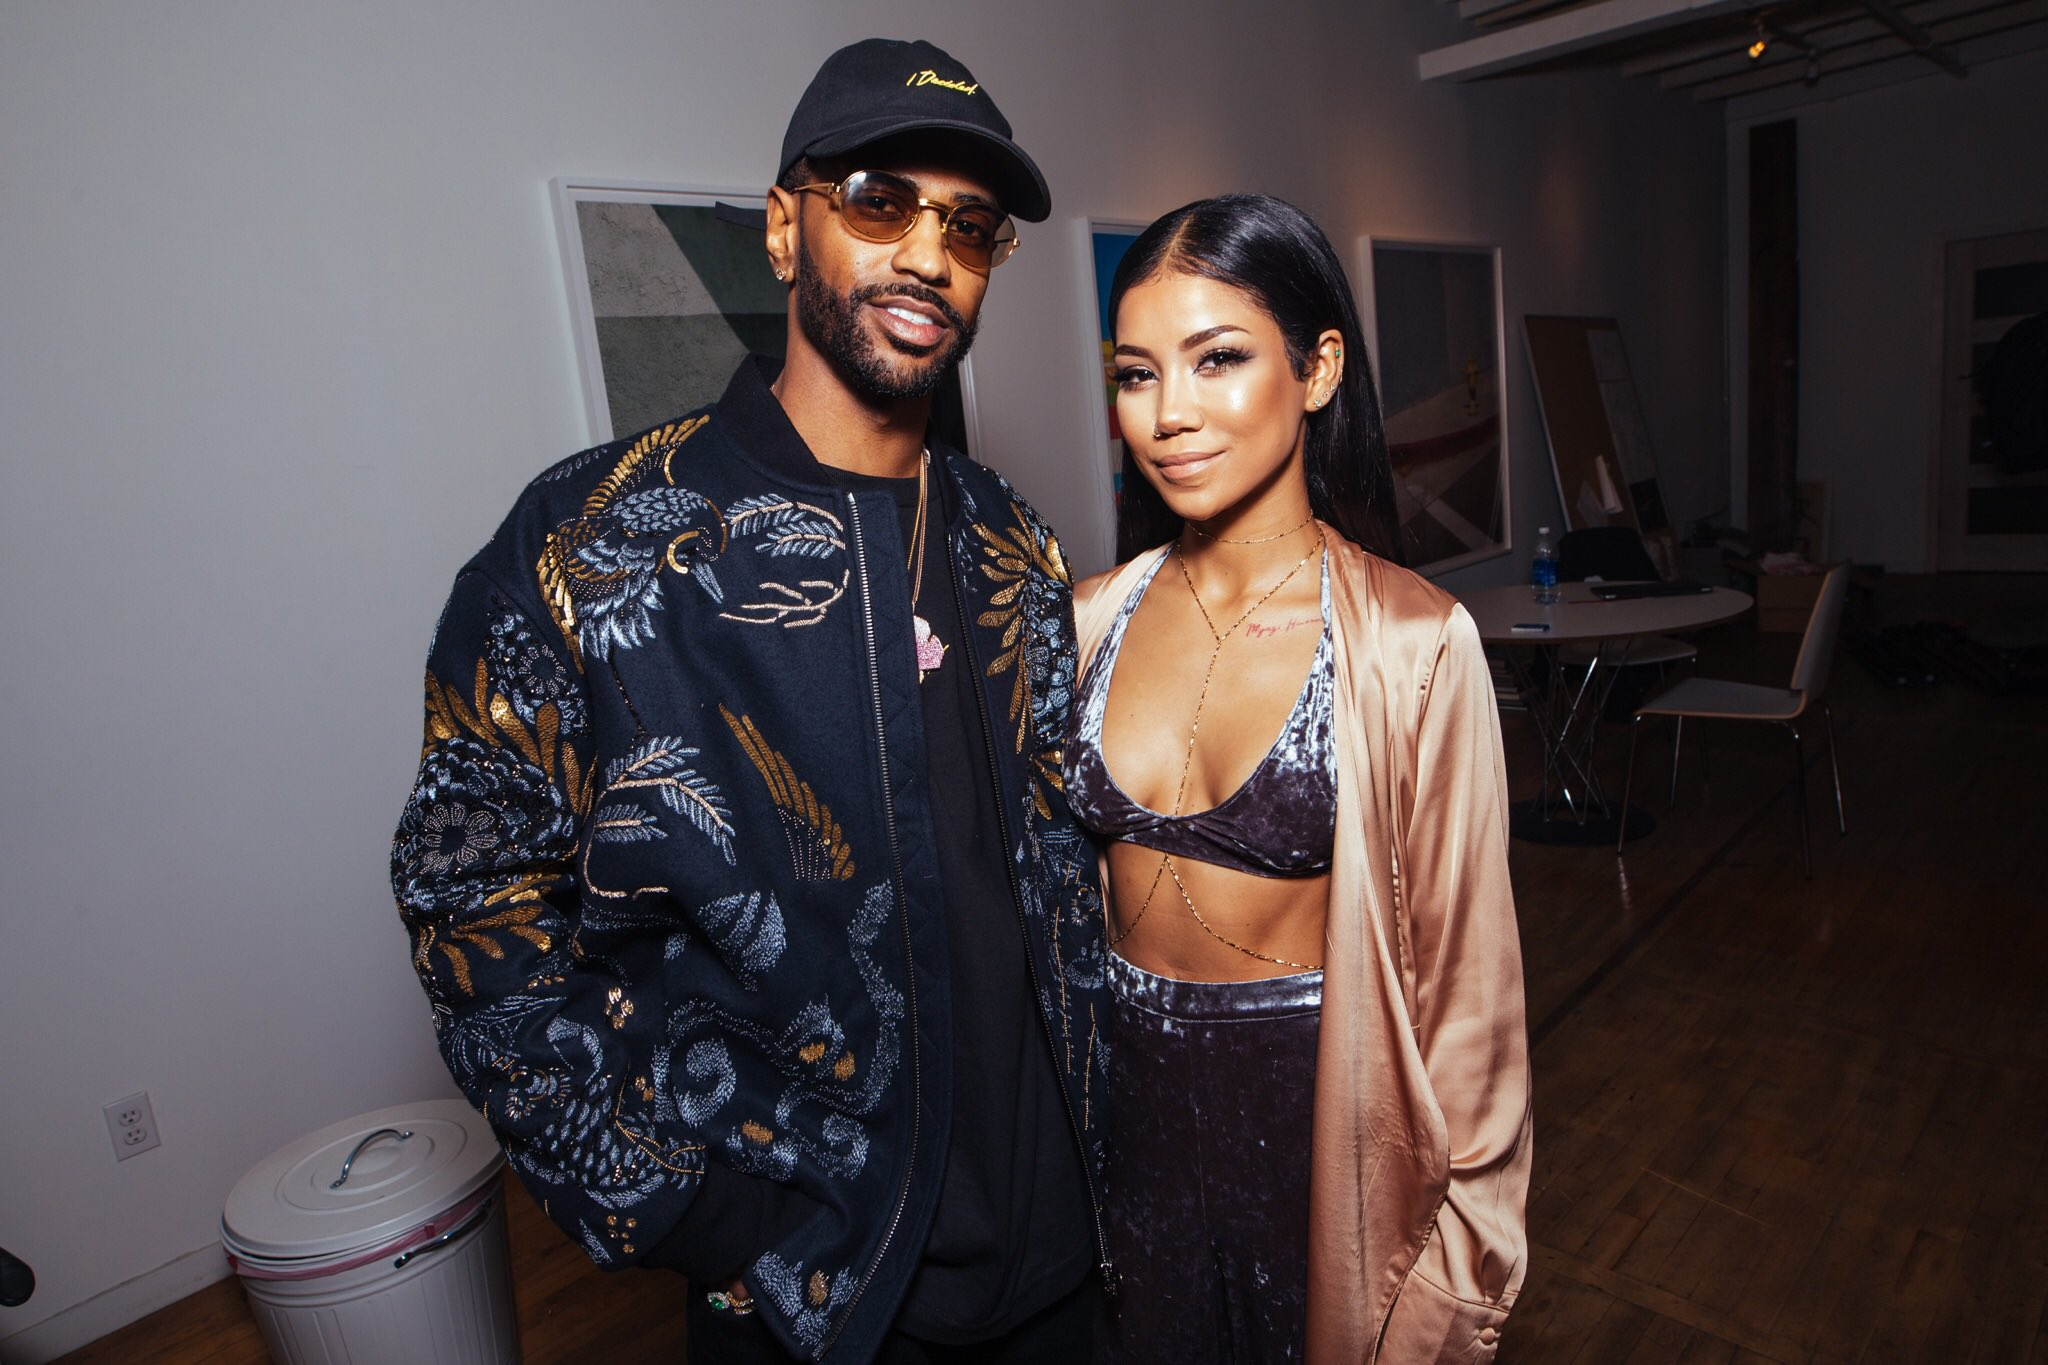 Big Sean And Jhene Aiko #UltimateRelationshipGoals IMG 20170203 085032